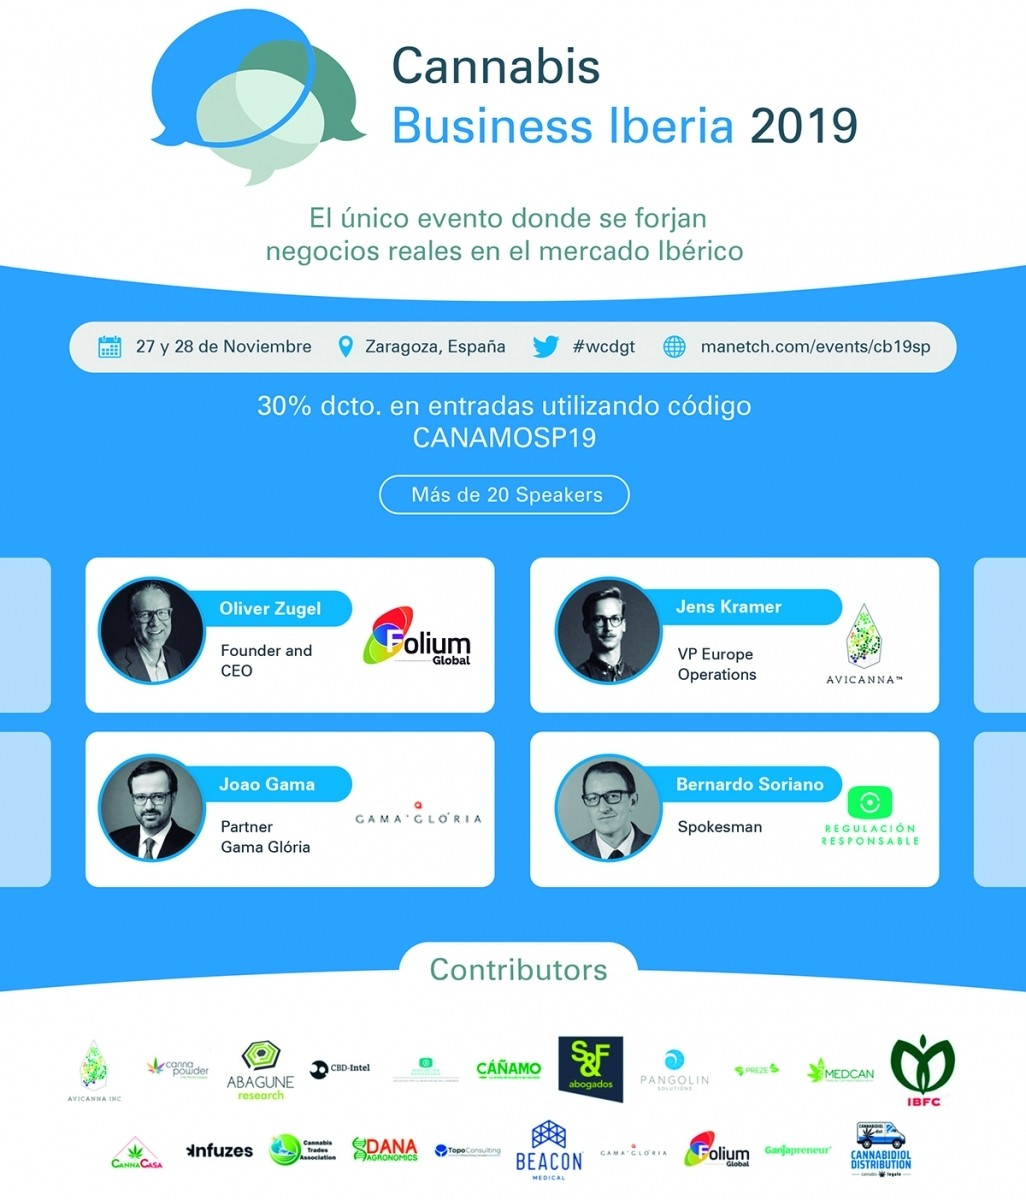 Se celebra el Cannabis Business Iberia 2019